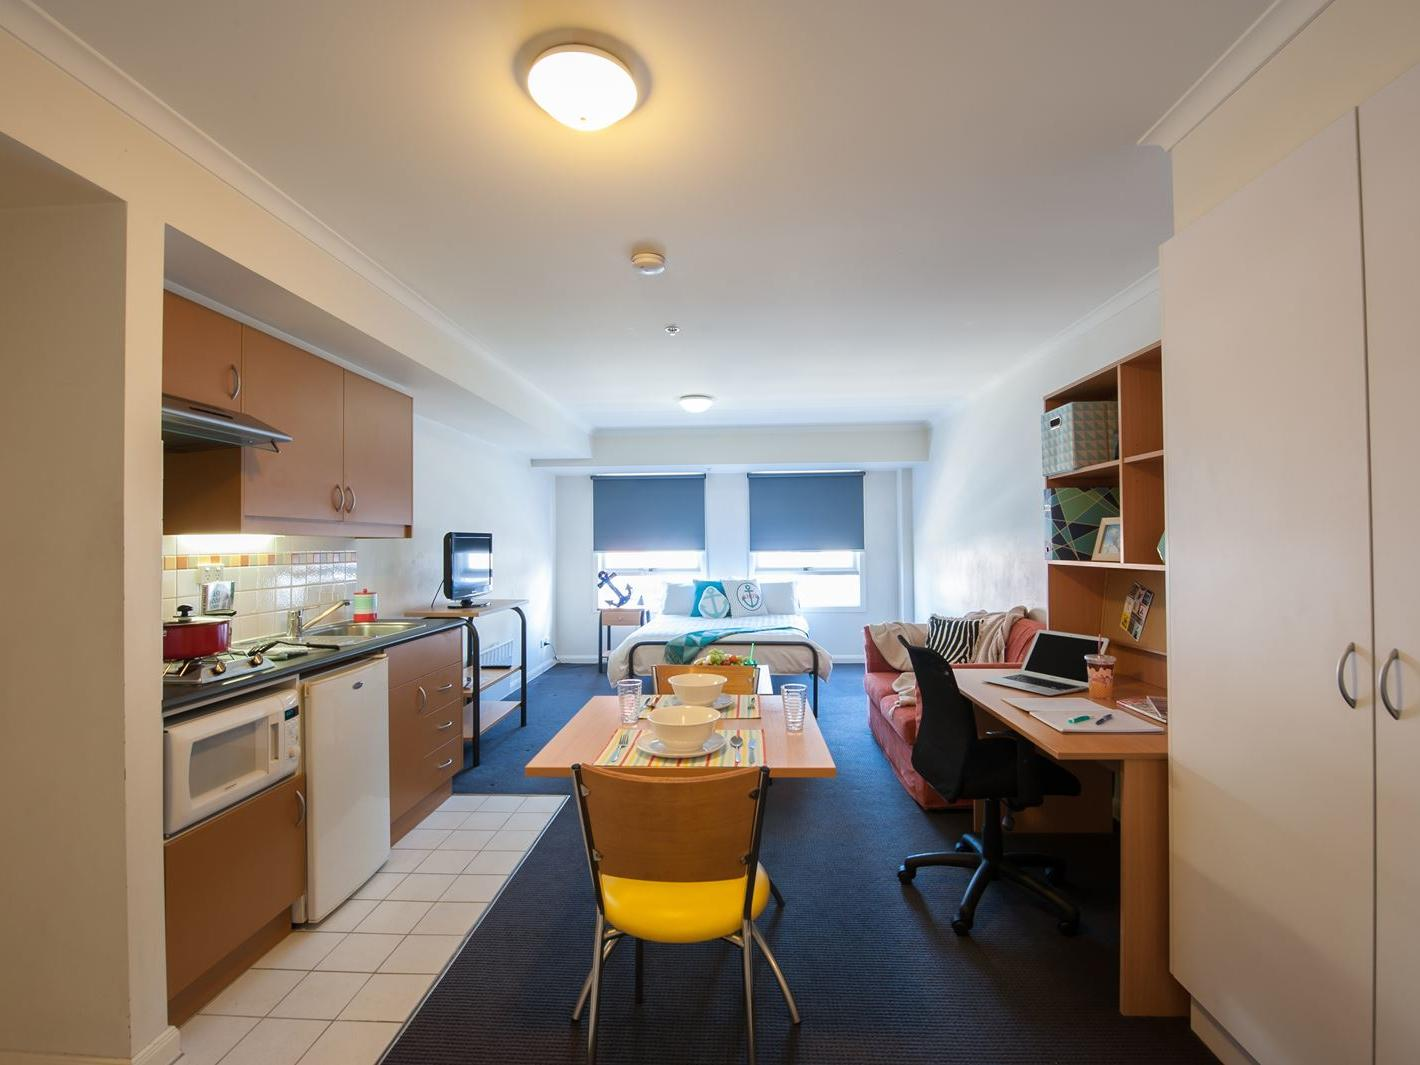 Double bed studio accommodation at UniLodge on Flinders